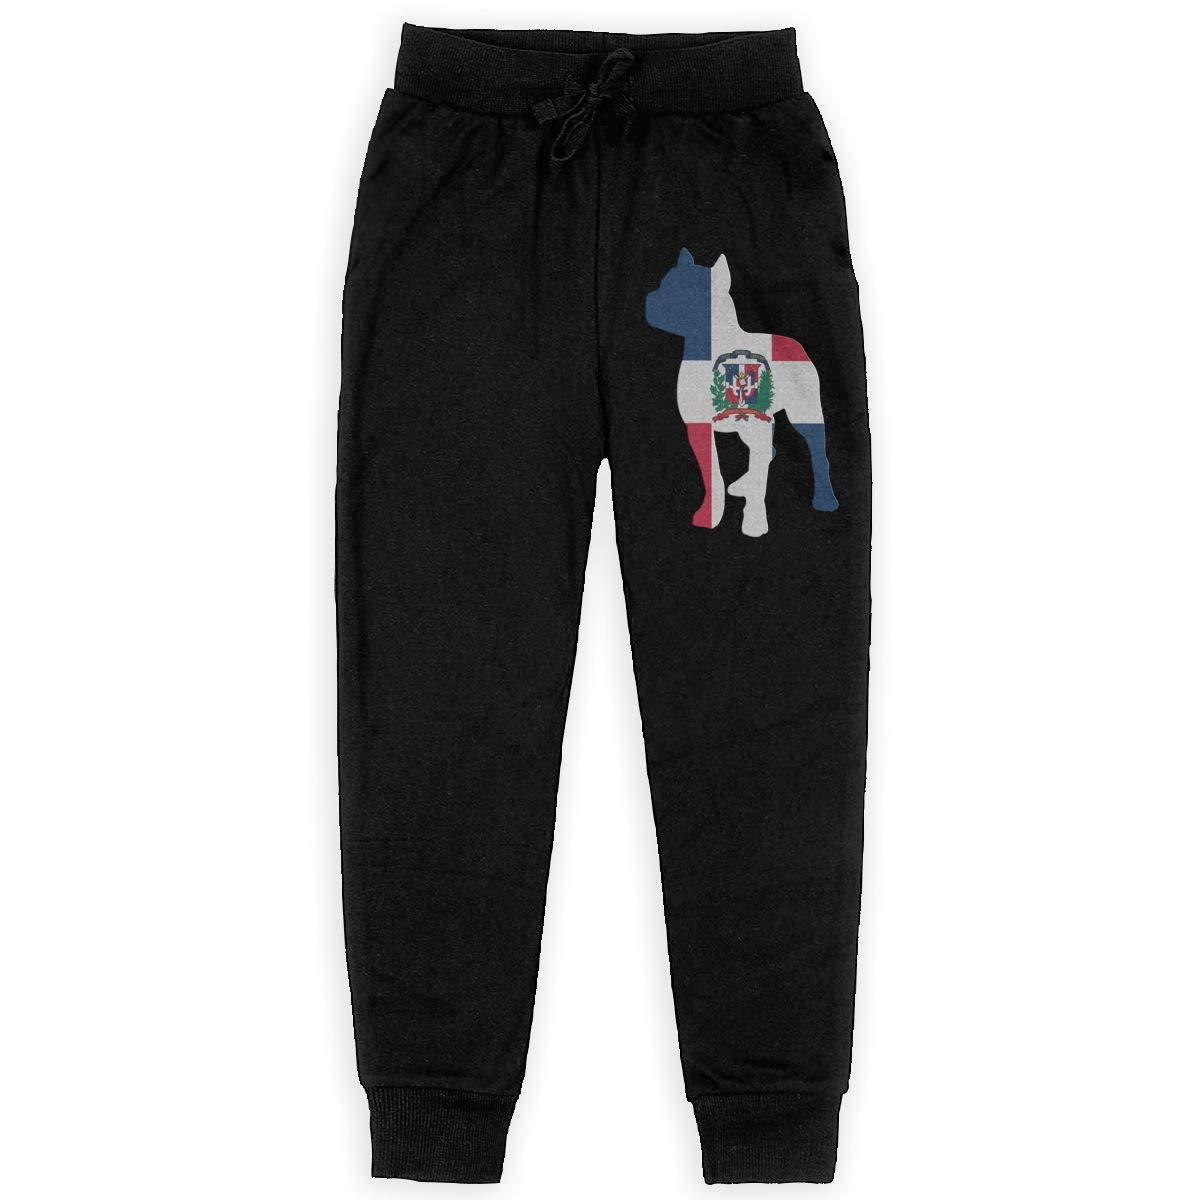 Boys Trousers Girls for Teenager Boys WYZVK22 Patriotic Pitbull Dominican Republic Flag Soft//Cozy Sweatpants